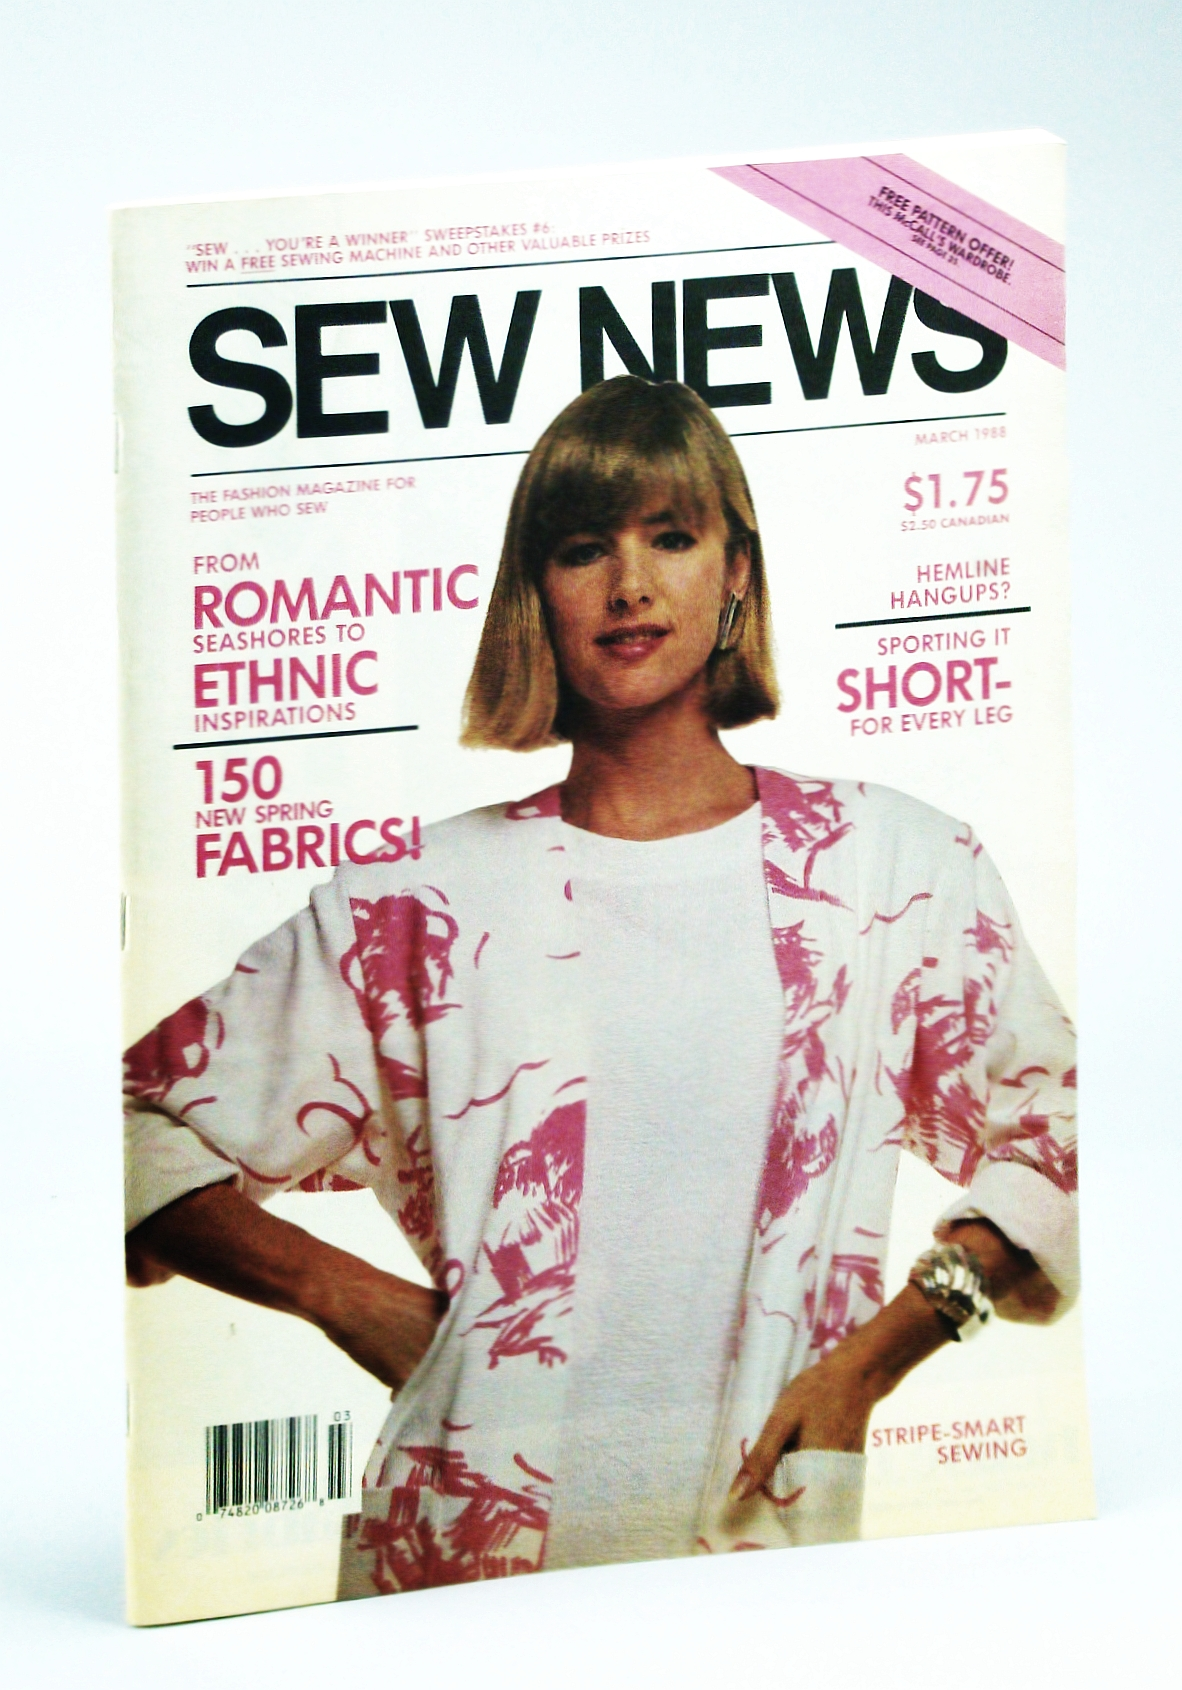 Image for Sew News - The Fashion Magazine For People Who Sew, Number 66, March [Mar.] 1988 - Olympic Outfitters